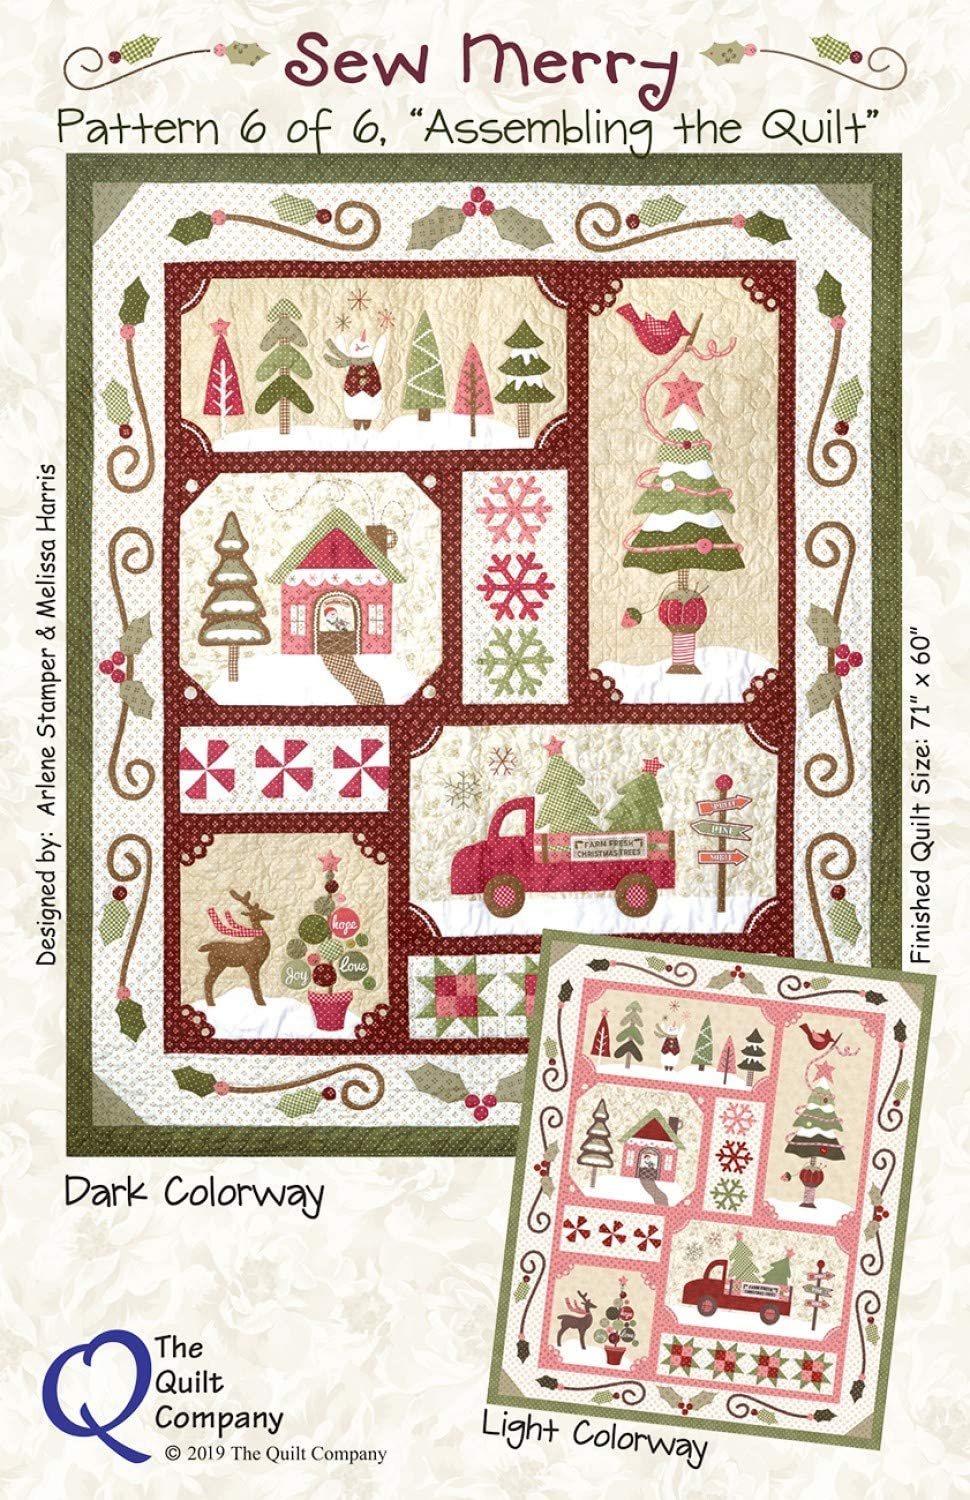 Sew Year-end gift Merry Quilt Patterns Max 75% OFF Accessory The Company Pack 6 by